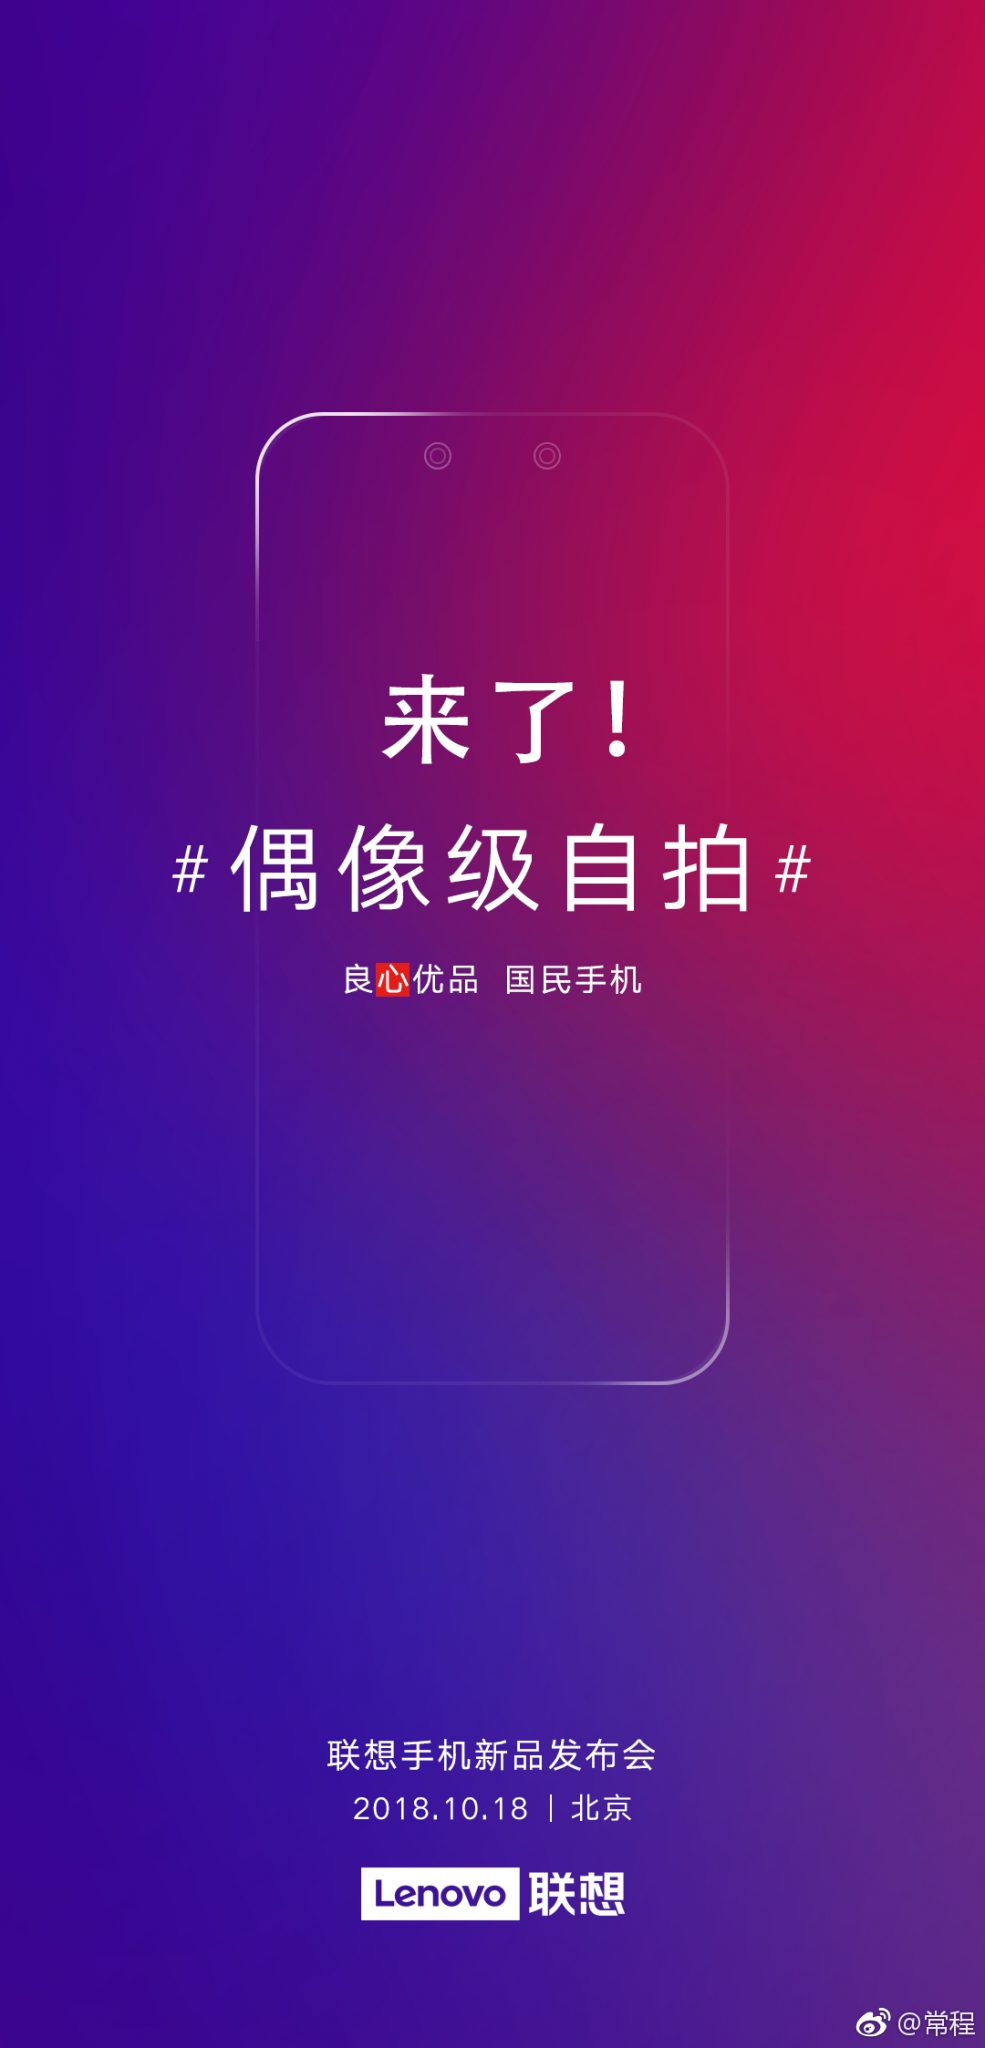 Lenovo S5 Pro is launching on October 18